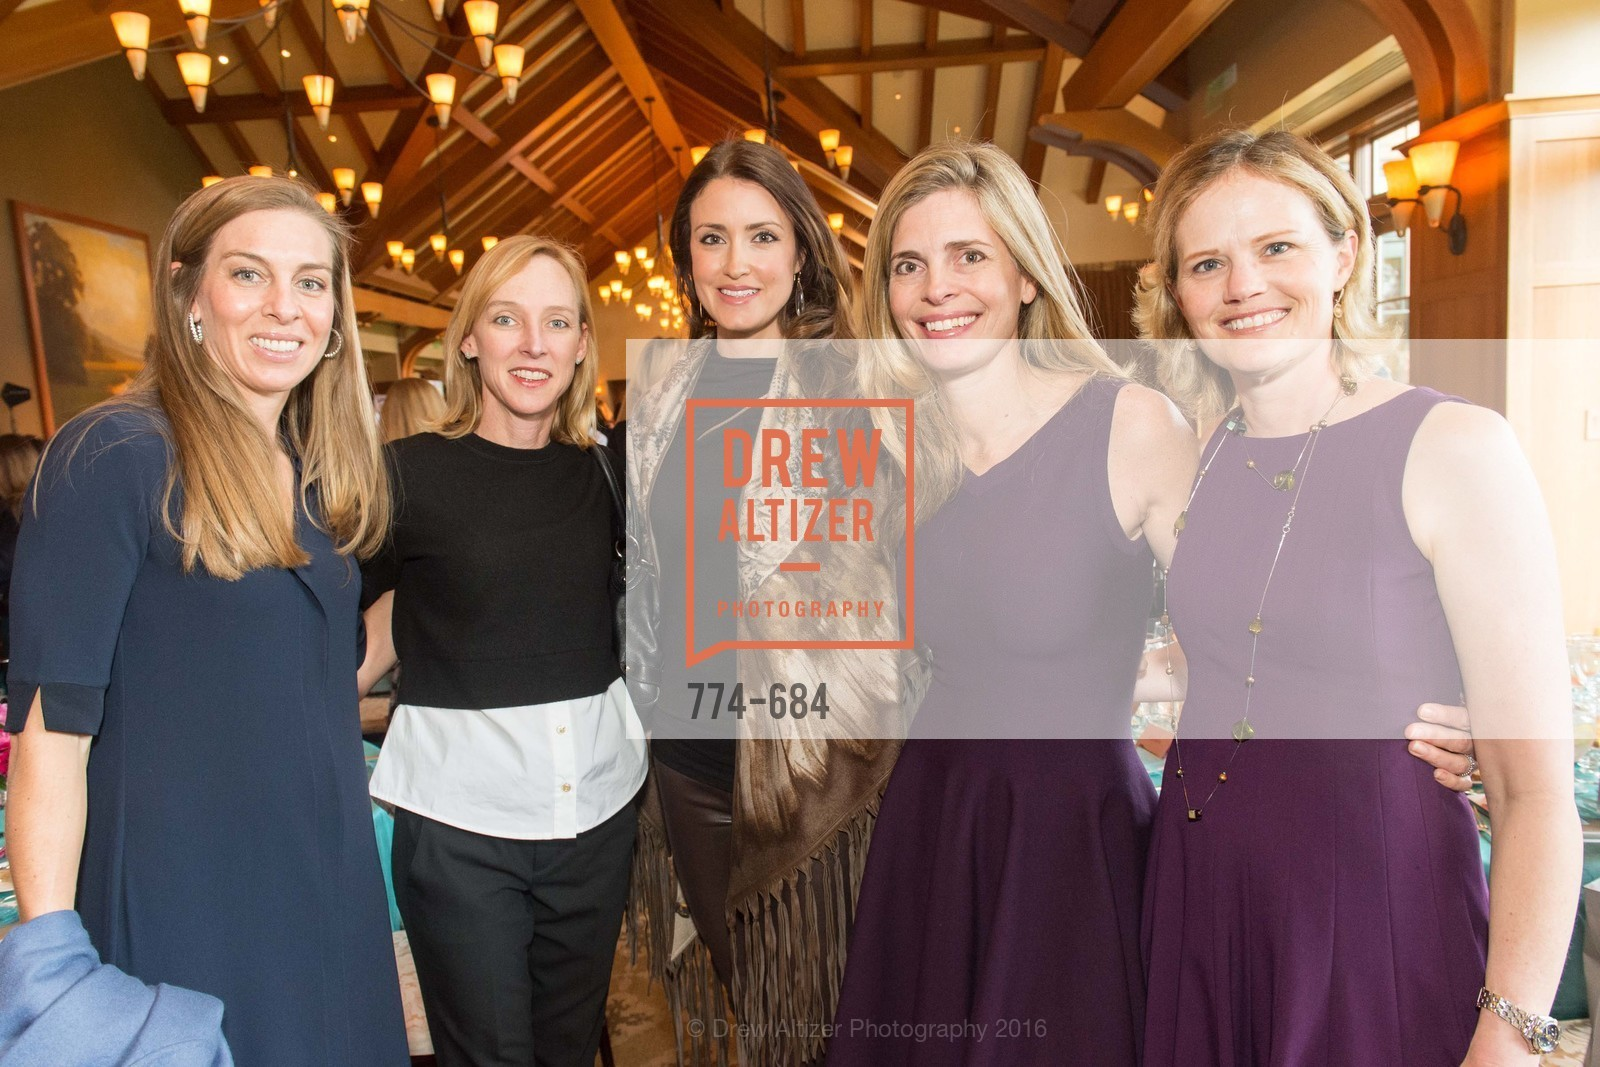 Ashley Hunter, Nicole Rubin, Agatha Luczo, Suzanne Crandall, Kristin Crosland, Under One Umbrella, Sharon Heights Golf and Country Club, January 13th, 2016,Drew Altizer, Drew Altizer Photography, full-service agency, private events, San Francisco photographer, photographer california